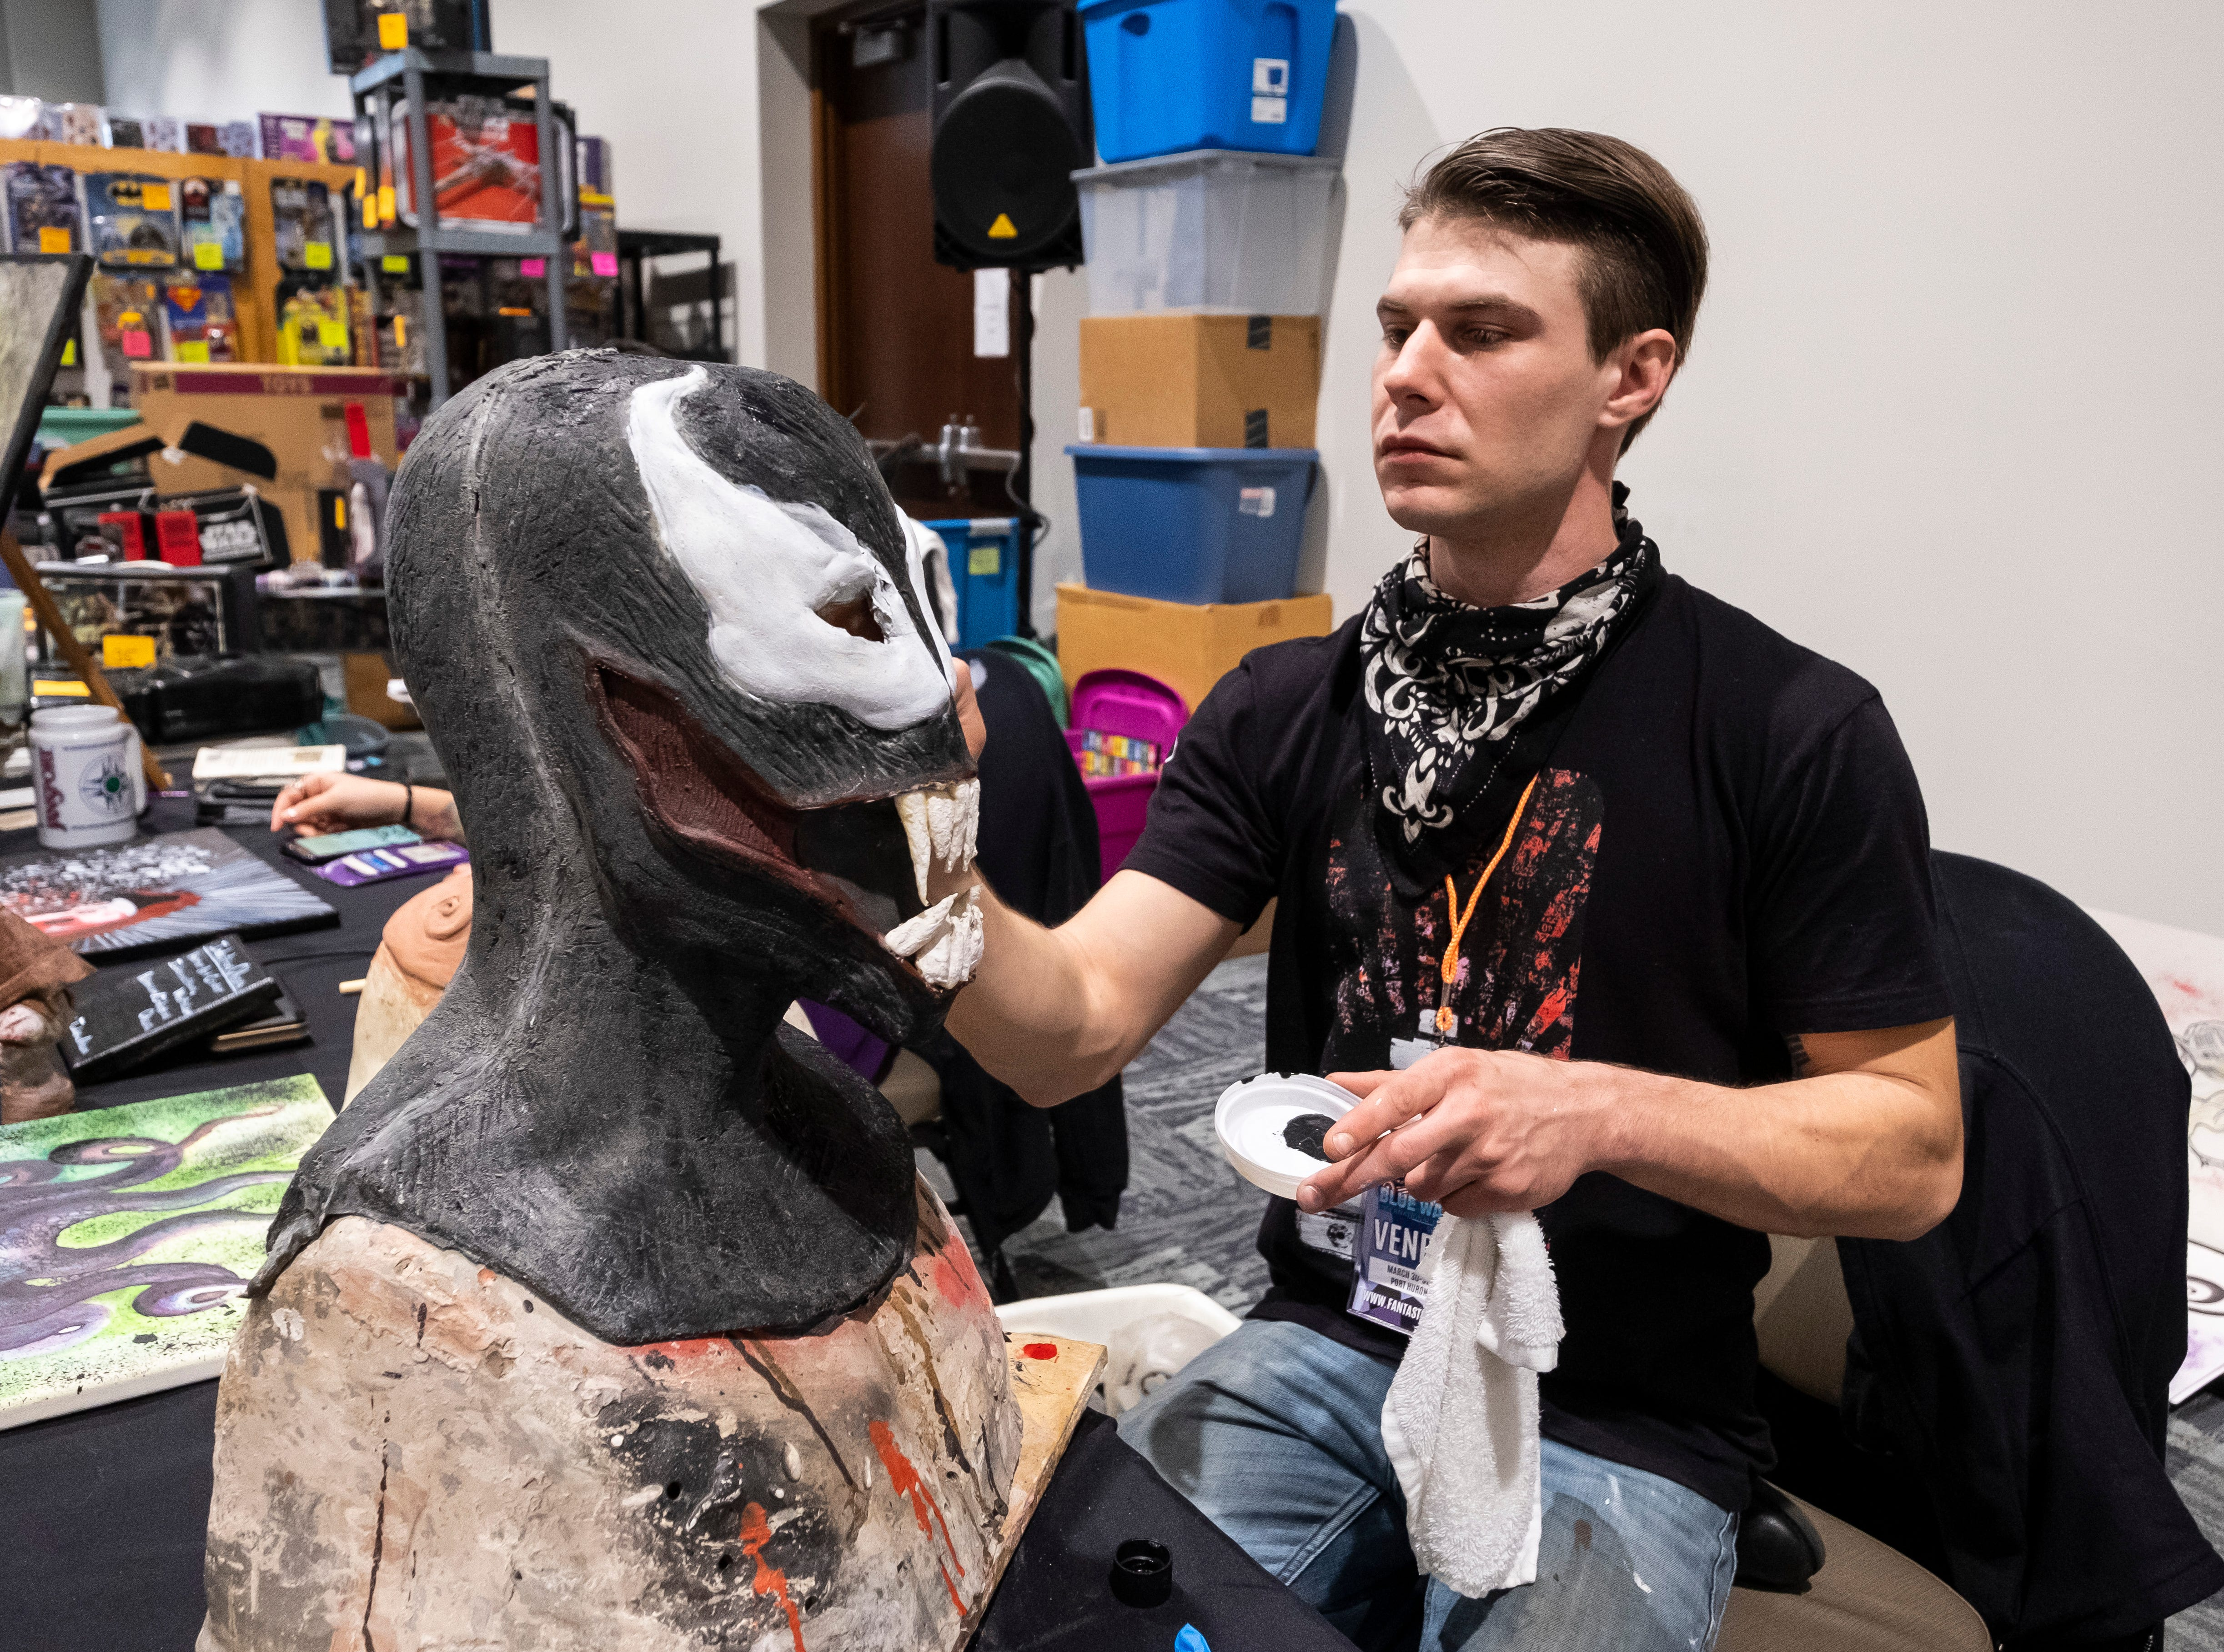 Mike Parrent, owner of Industrious Obscura, paints a Venom mask Saturday, March 30, 2019 at his booth at Blue Water International Comic-Con at the Blue Water Convention Center. Parrent says by the end of the weekend, he will have several masks completed that will be for sale at his booth.